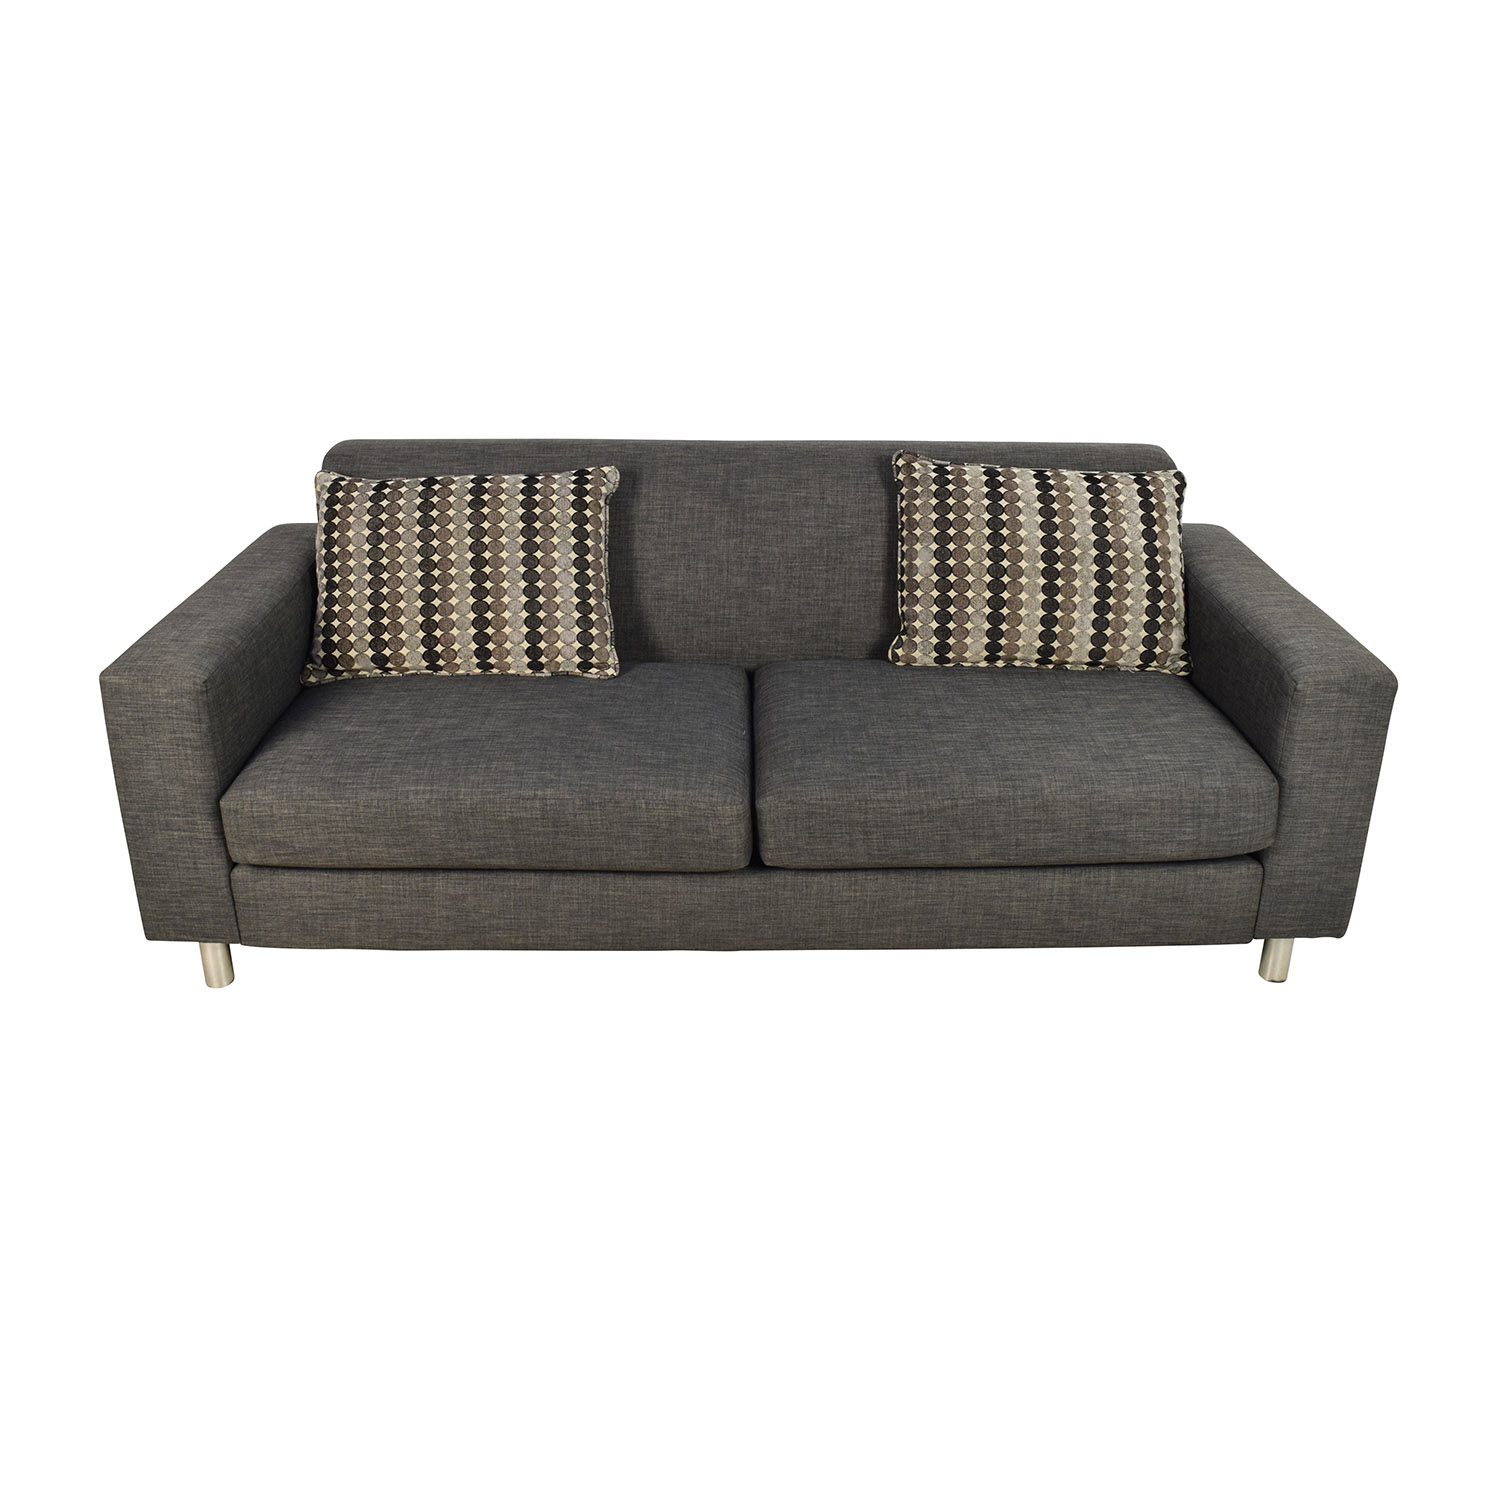 Cort Cort Pia Sofa with 2 Toss Pillows second hand